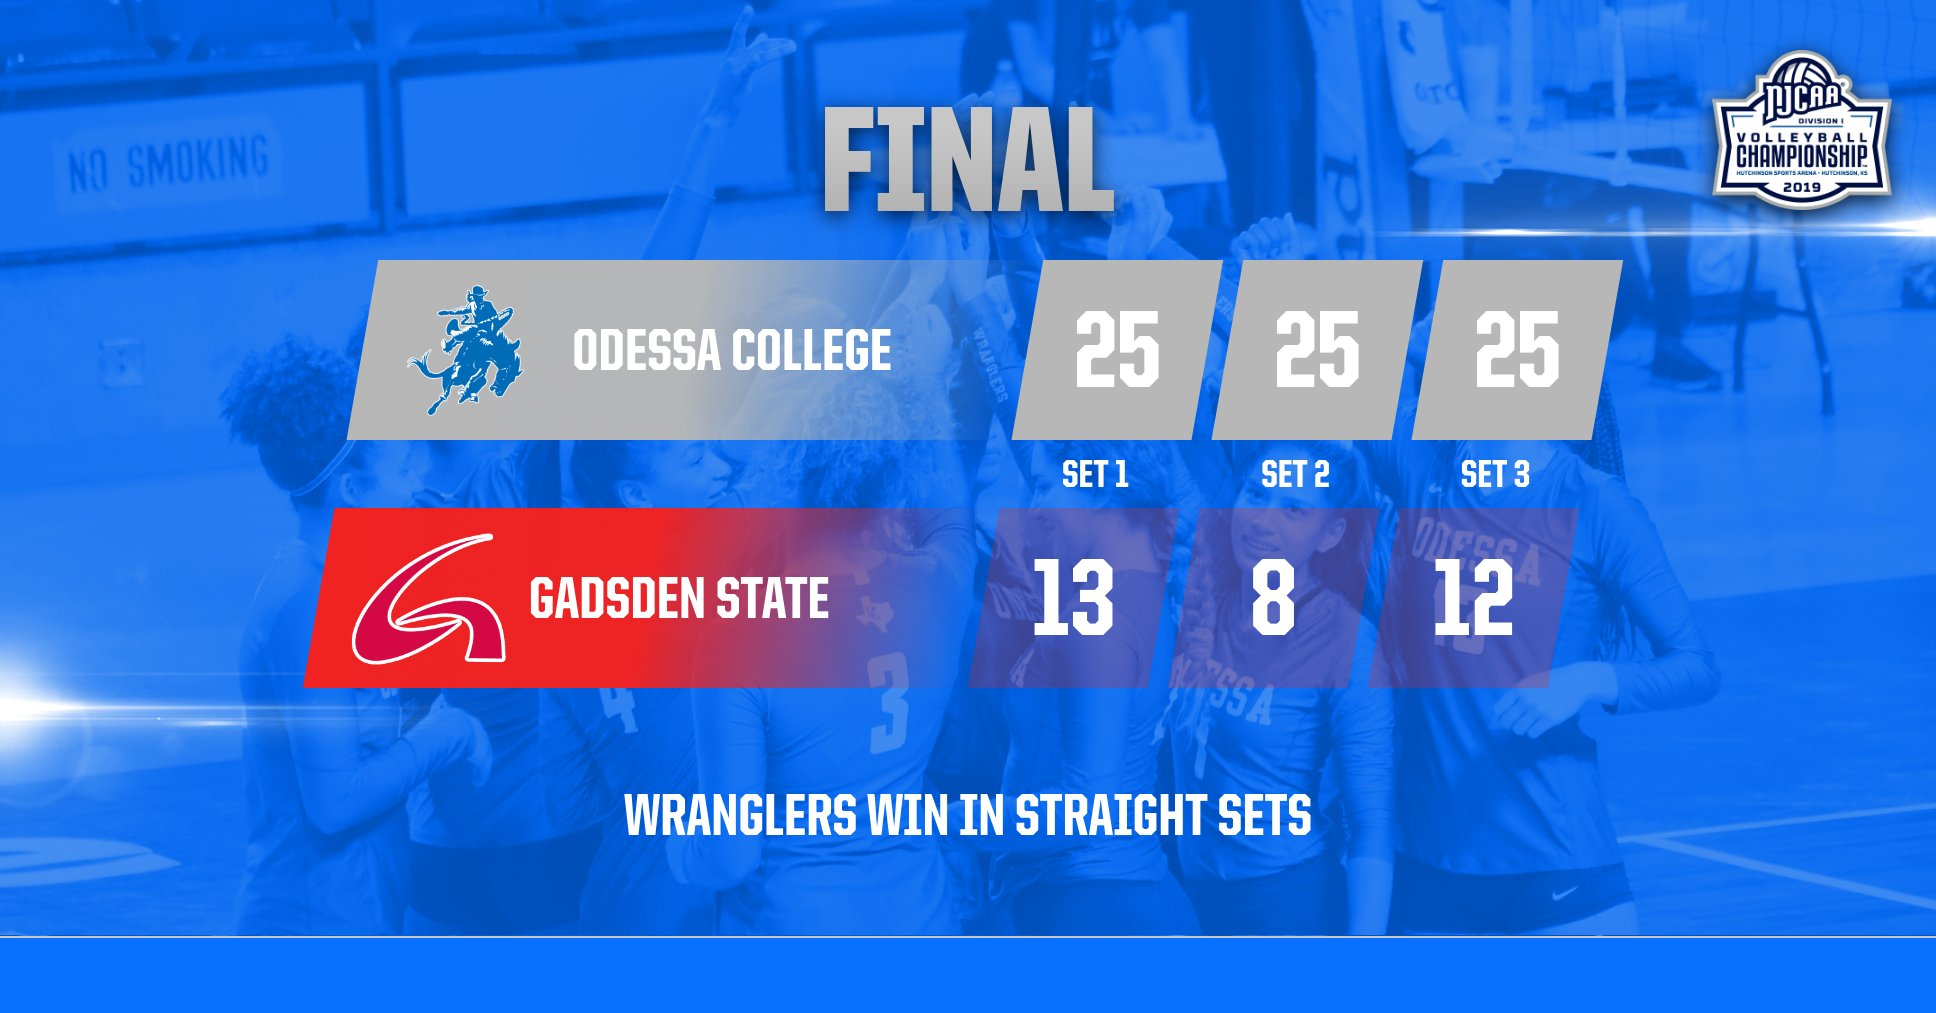 Wranglers defeat Gadsden State in Straight Sets